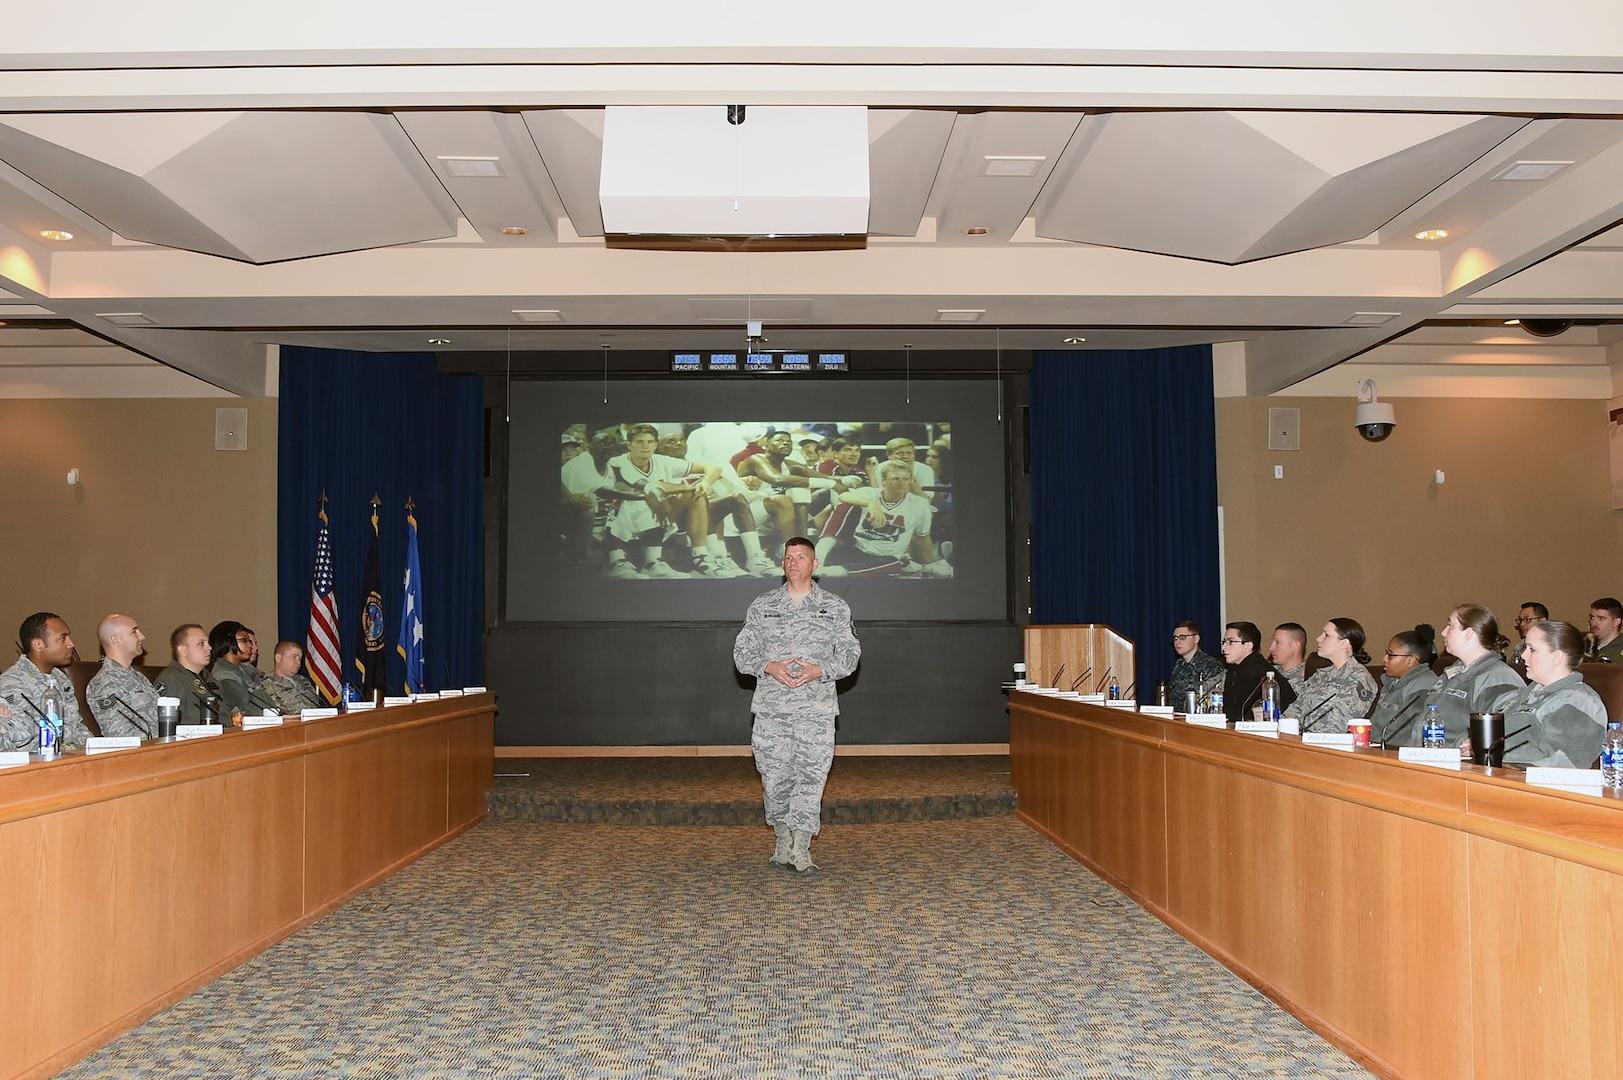 U.S. Air Force Chief Master Sgt. Patrick McMahon, senior enlisted leader of U.S. Strategic Command (USSTRATCOM), delivers remarks during the inaugural non-commissioned officer (NCO) and petty officer (PO) joint professional development seminar at Offutt Air Force Base, Neb., Jan. 24, 2018. During the two-day course, NCOs and POs assigned to USSTRATCOM and the 55th Wing discussed leadership techniques with senior enlisted leaders and officers through a series of discussion panels and briefings. This pilot course was developed by USSTRATCOM's senior enlisted leaders to enhance the effectiveness of soldiers, sailors, airmen and Marines at the E-5 and E-6 level through joint professional military education.